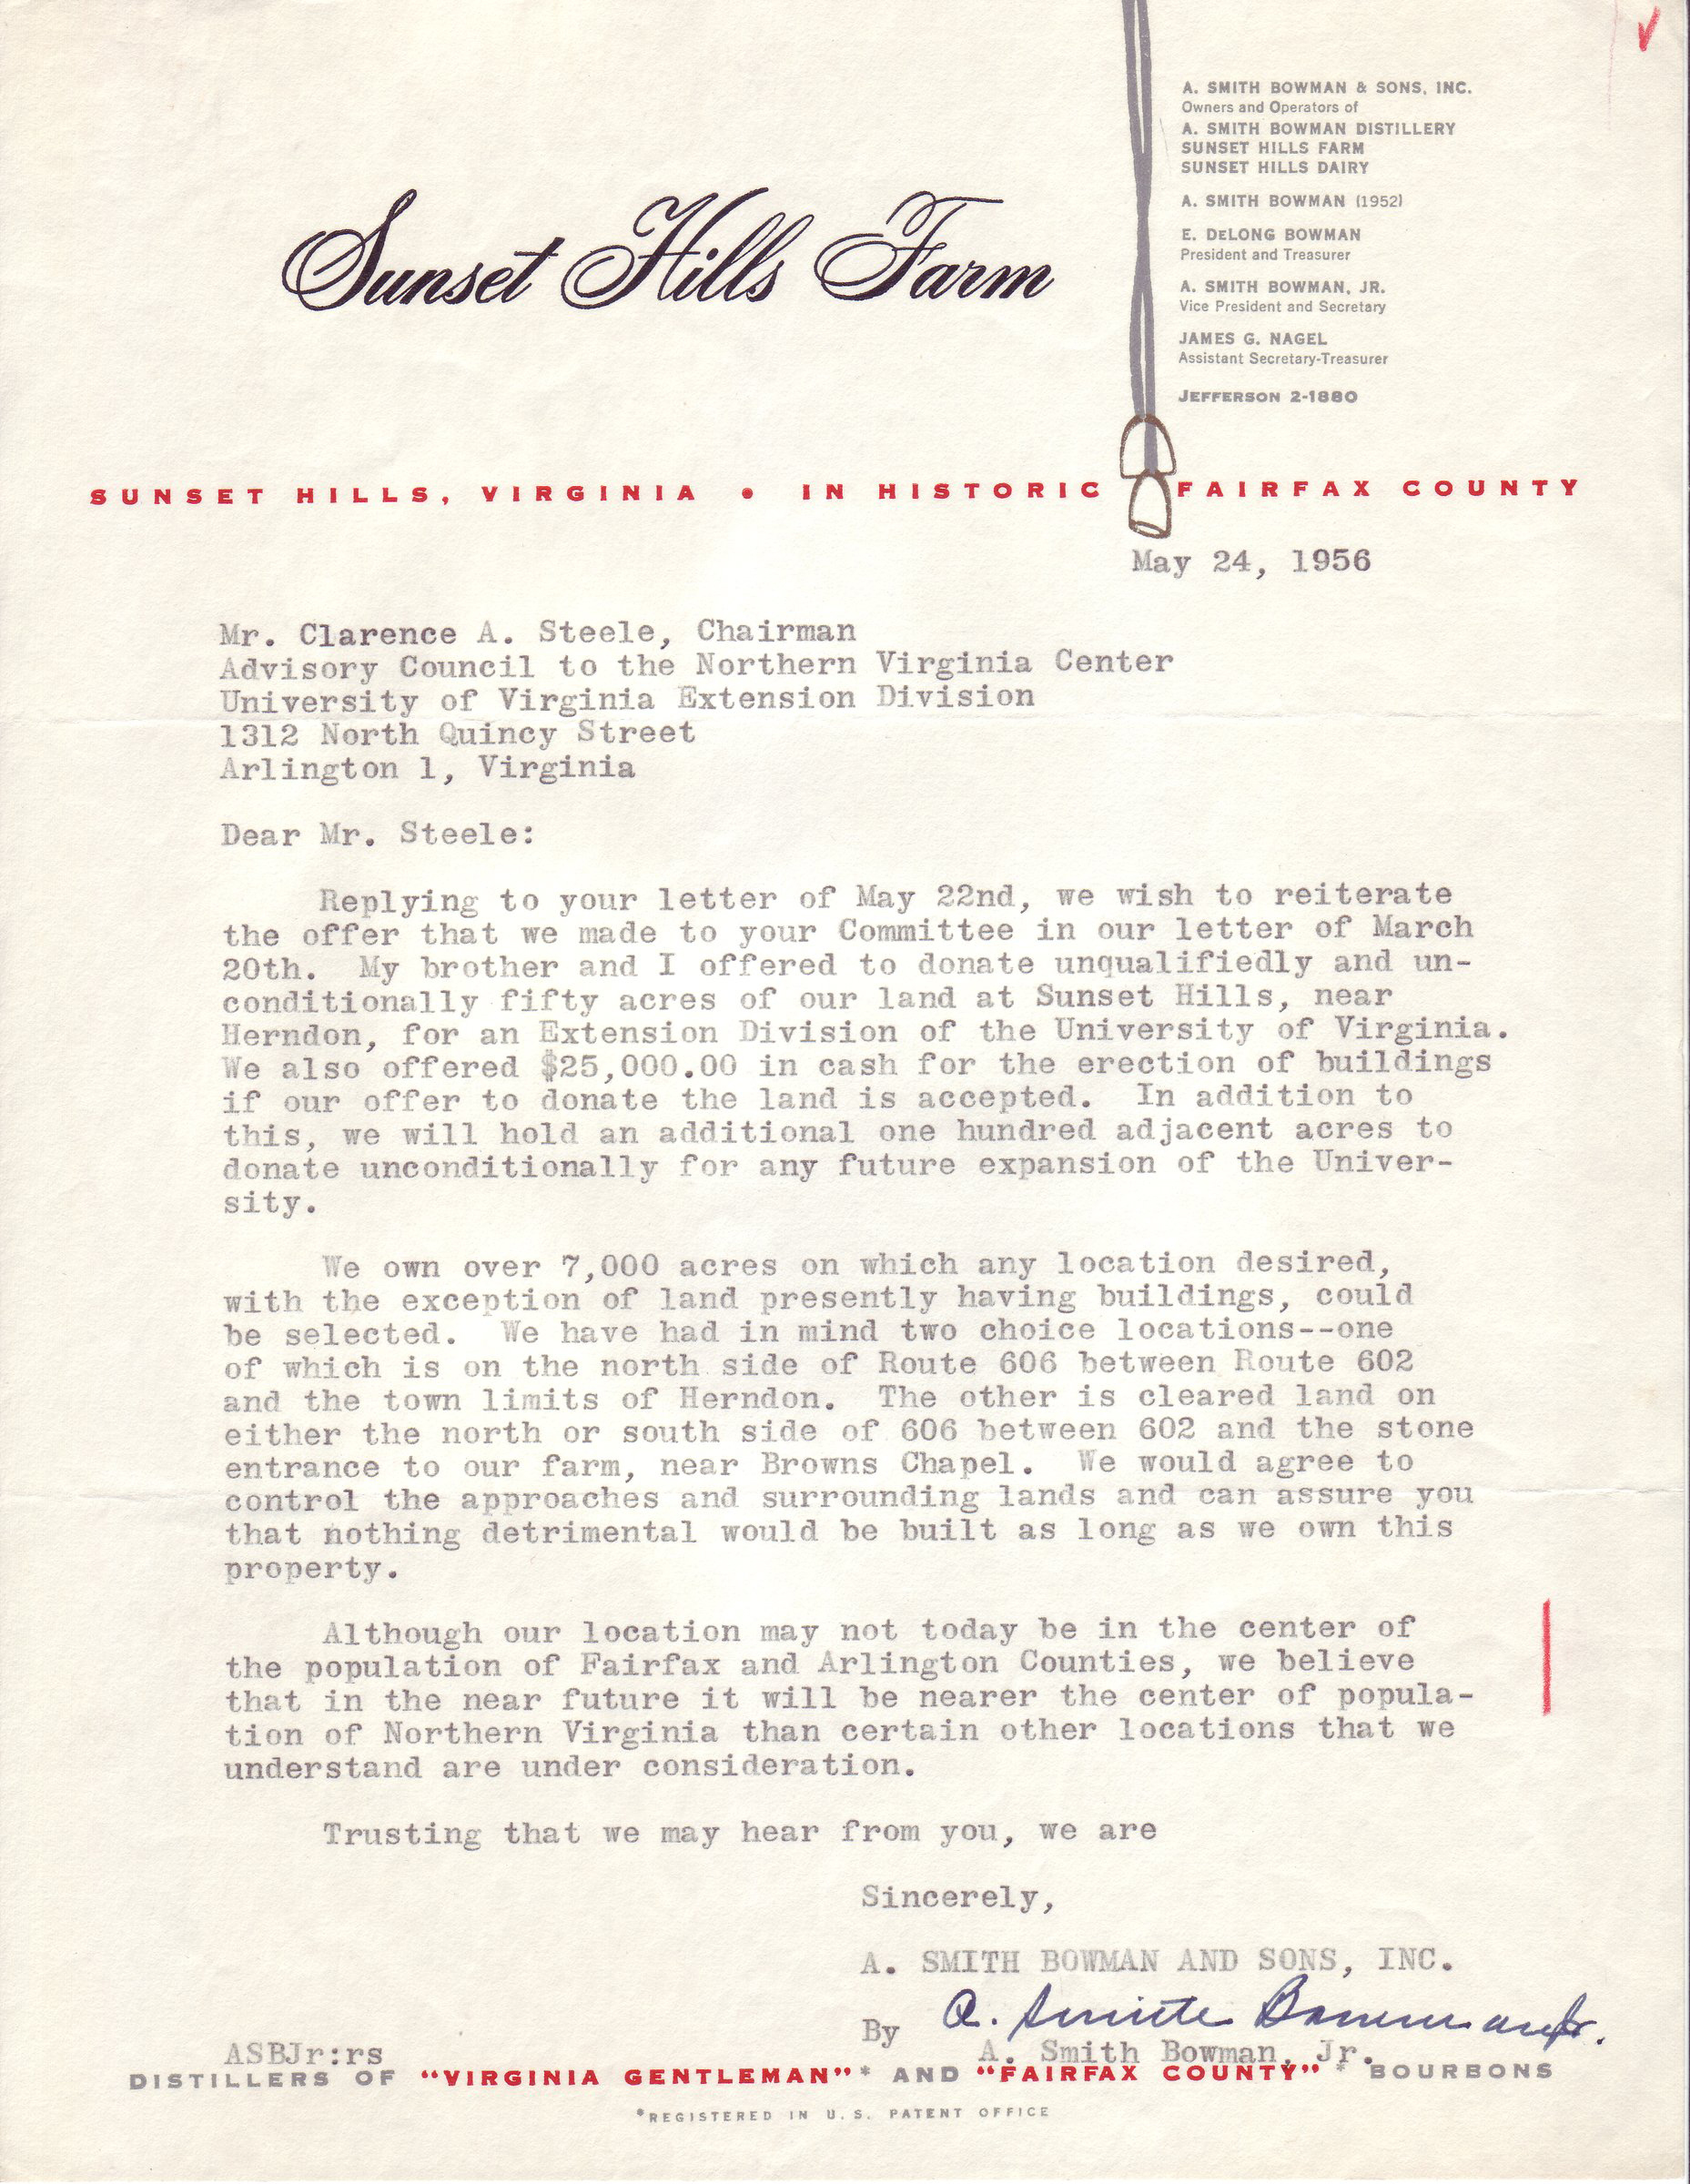 A. Smith Bowman, Jr. to Clarence A. Steele, May 24, 1956.